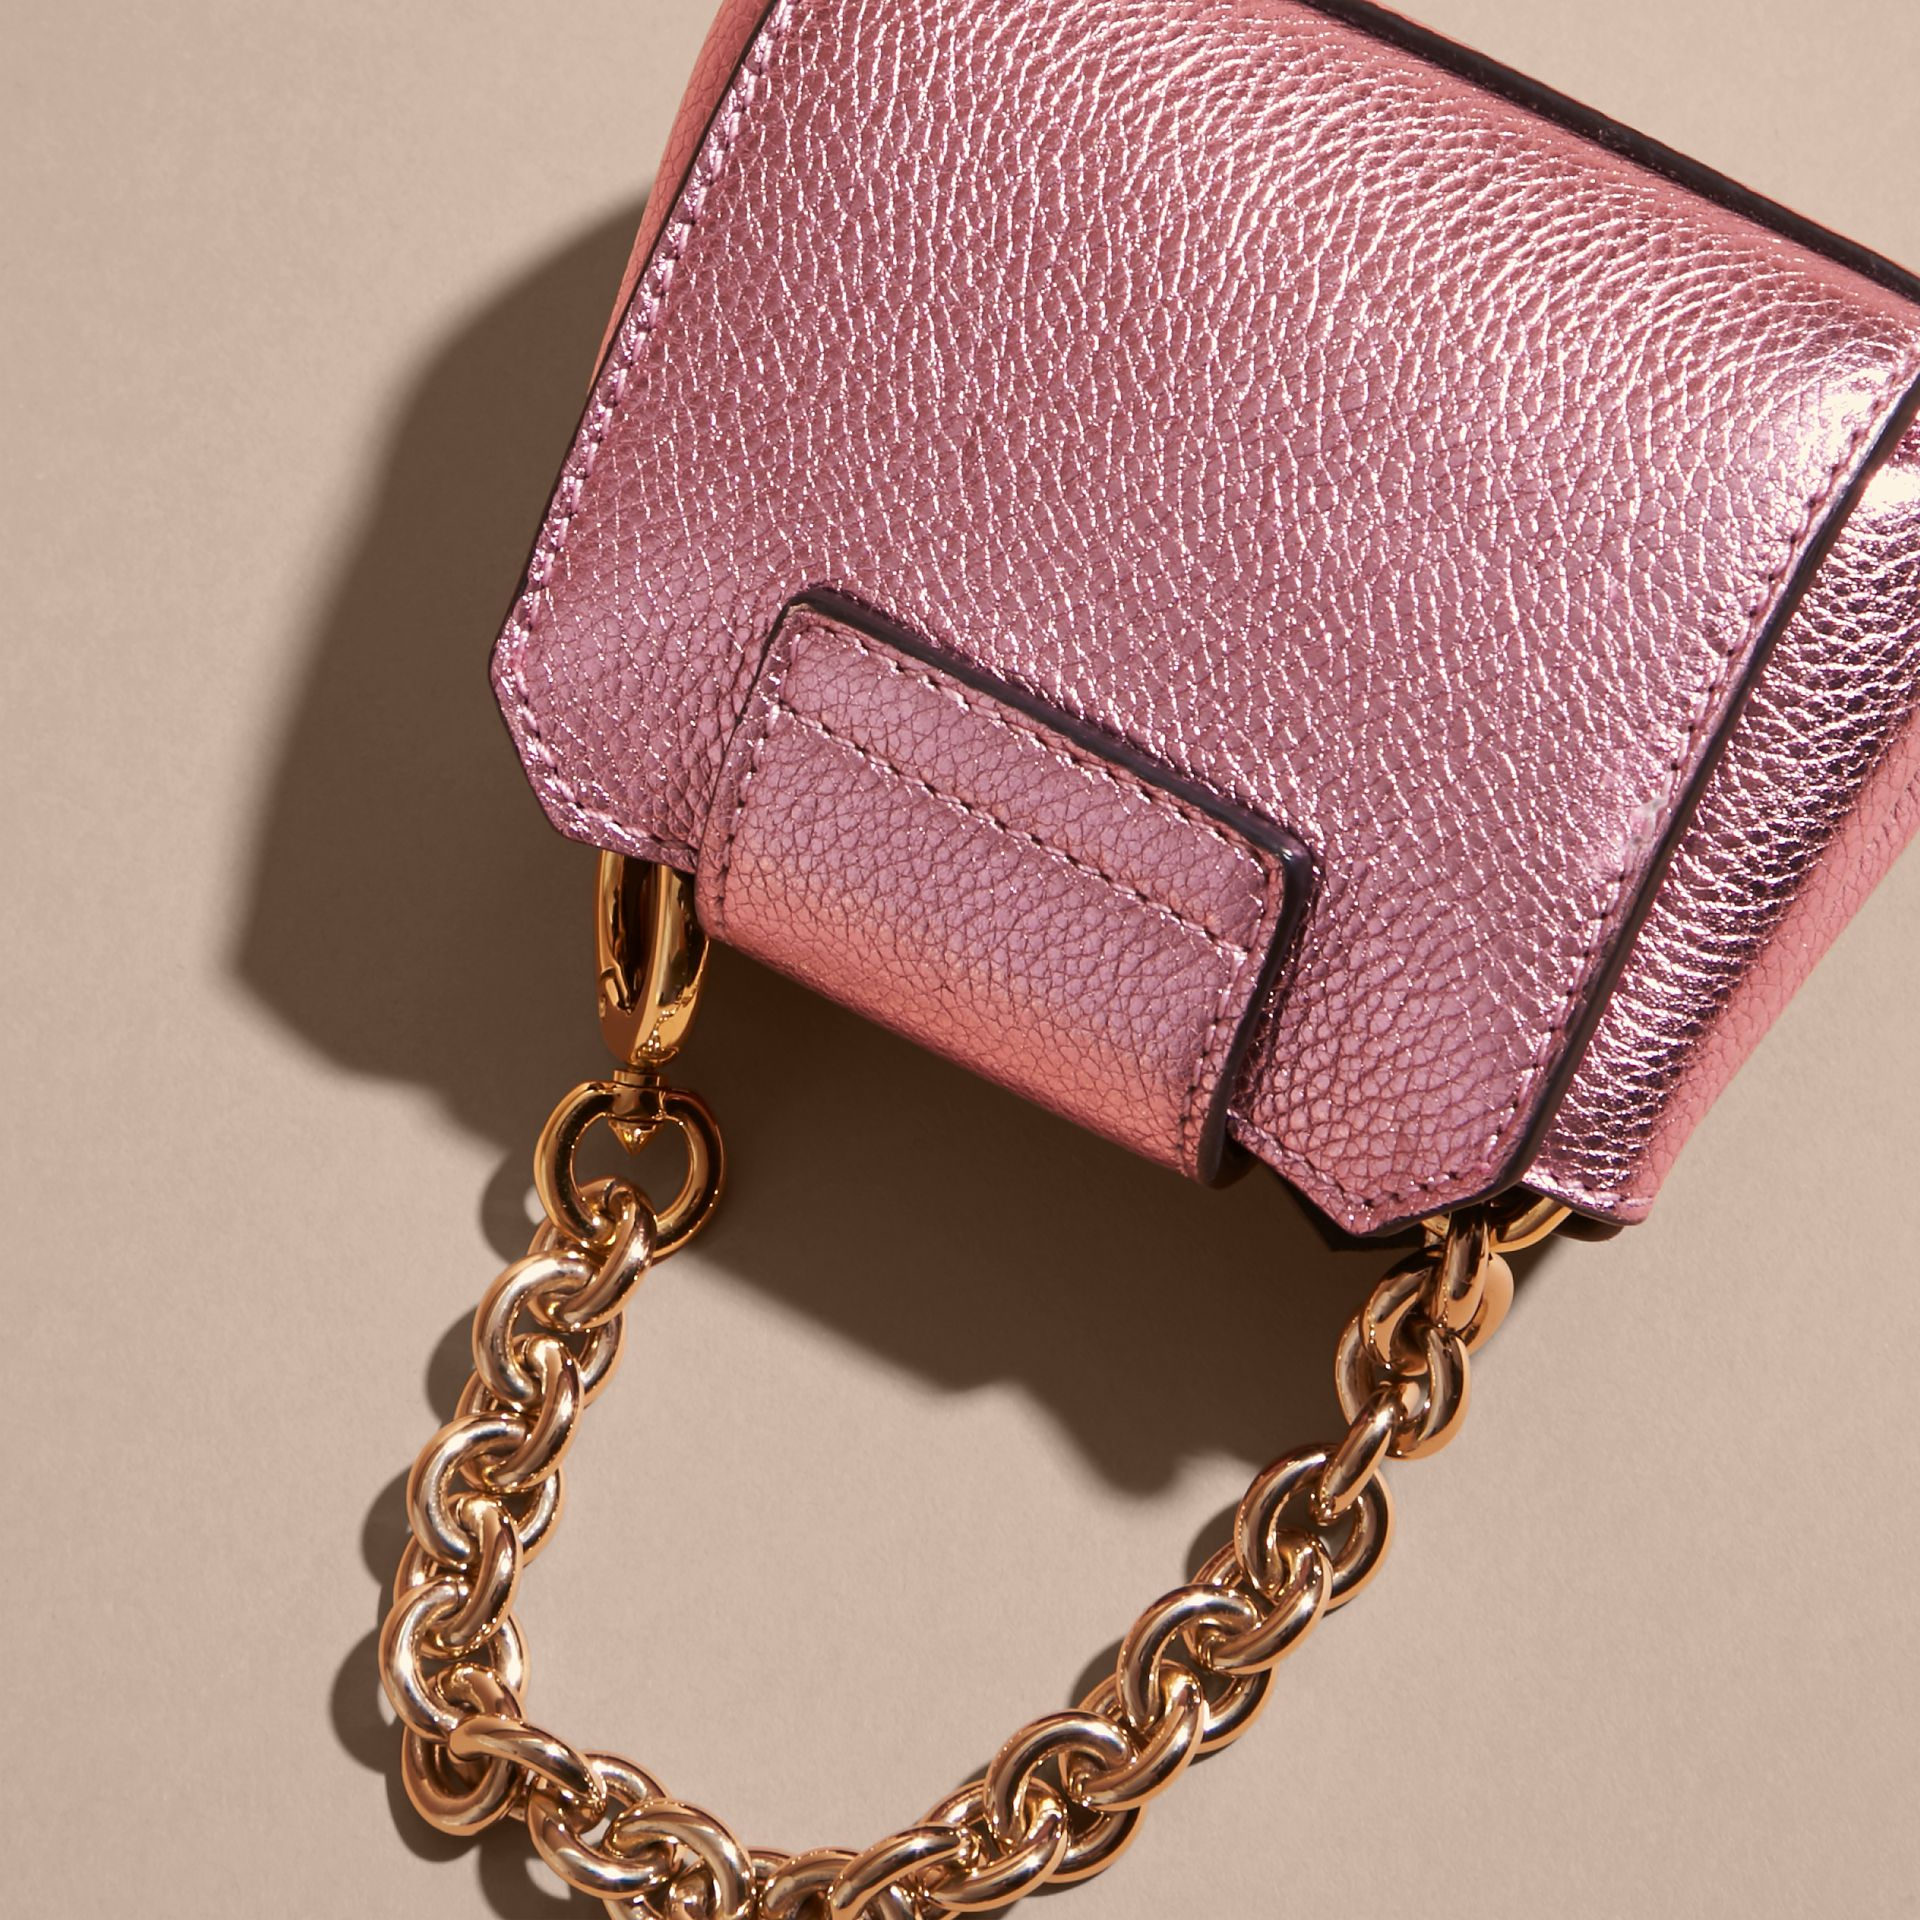 The Mini Buckle Tote Charm in Metallic Leather in Pale Orchid - gallery image 4